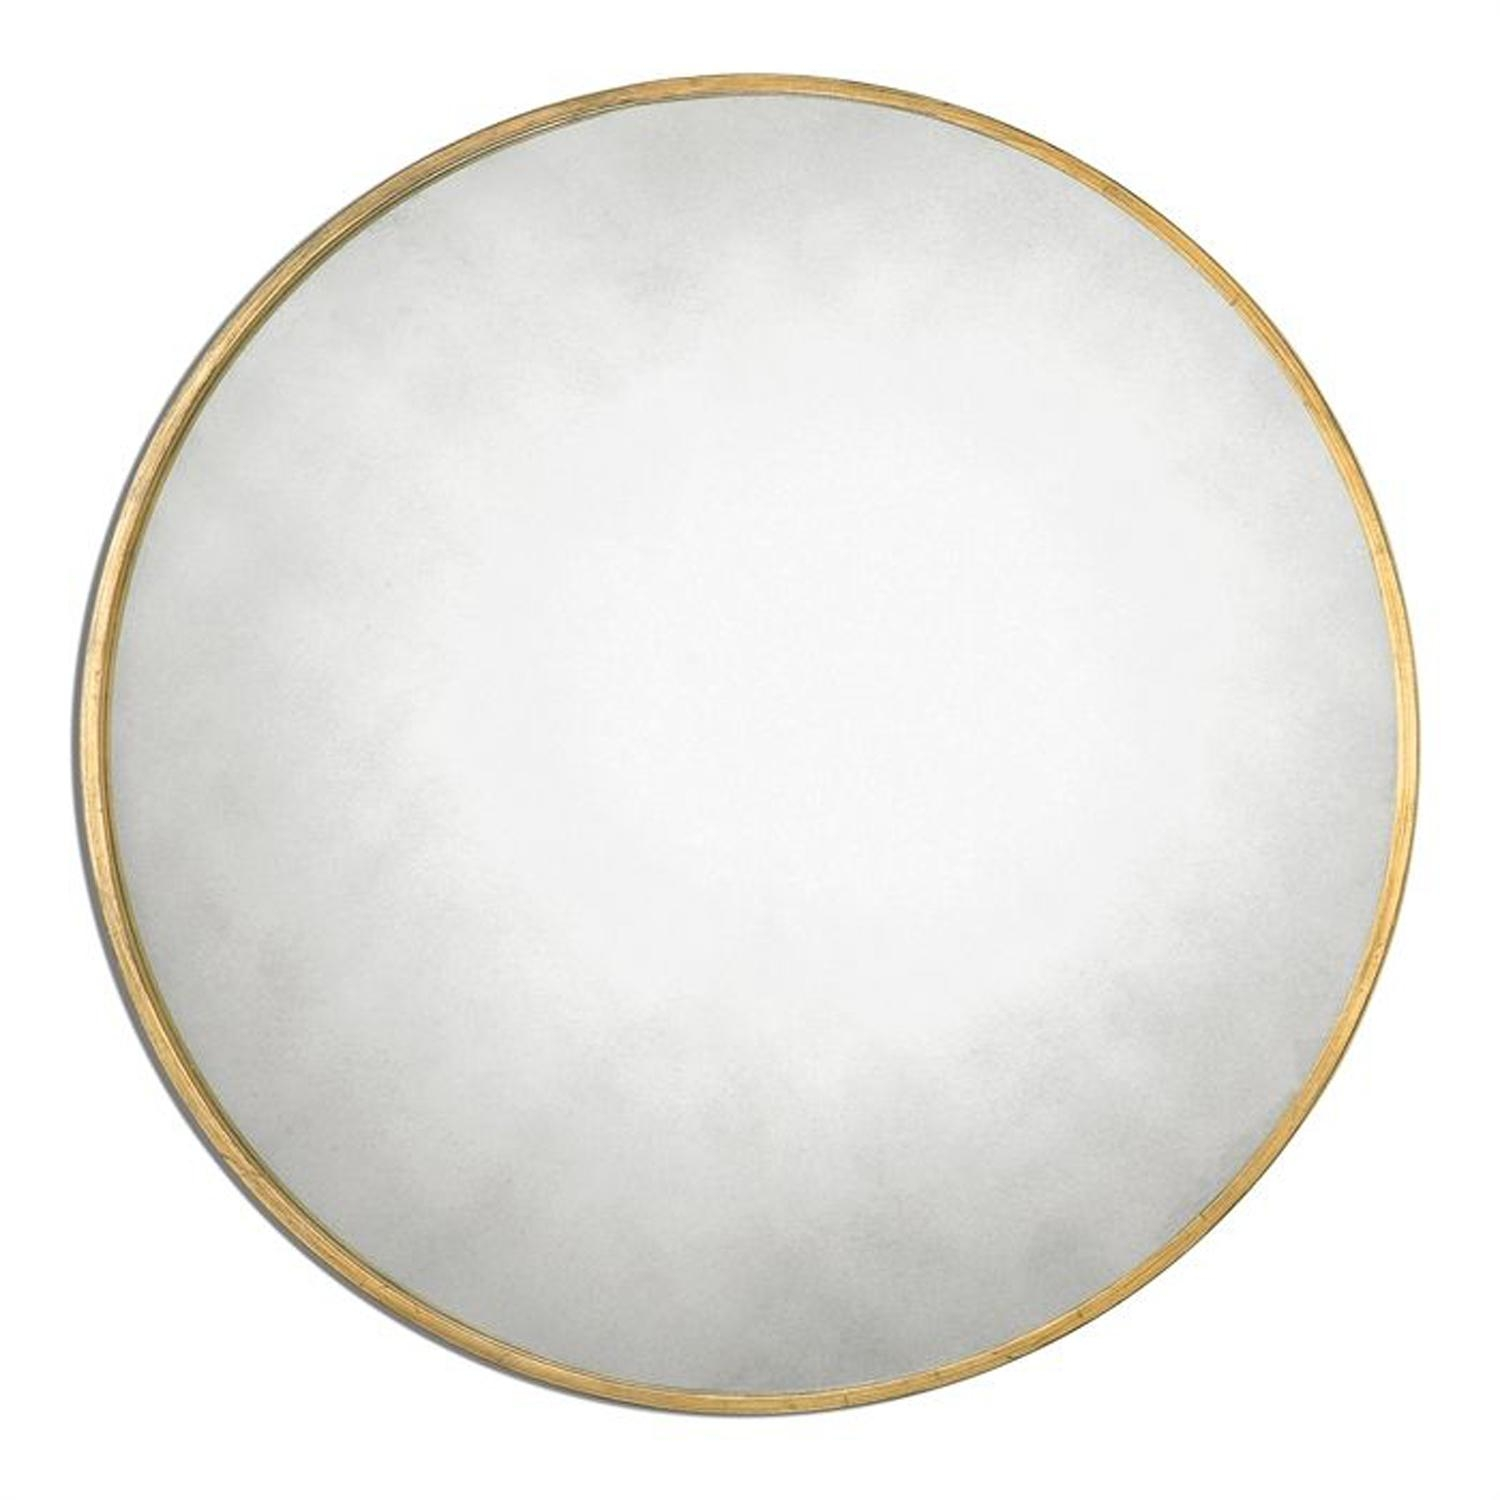 Wren Gold Round Mirror Cooper Classics Wall Mirror Mirrors Home Decor Pertaining To Round Mirrors (Image 20 of 20)